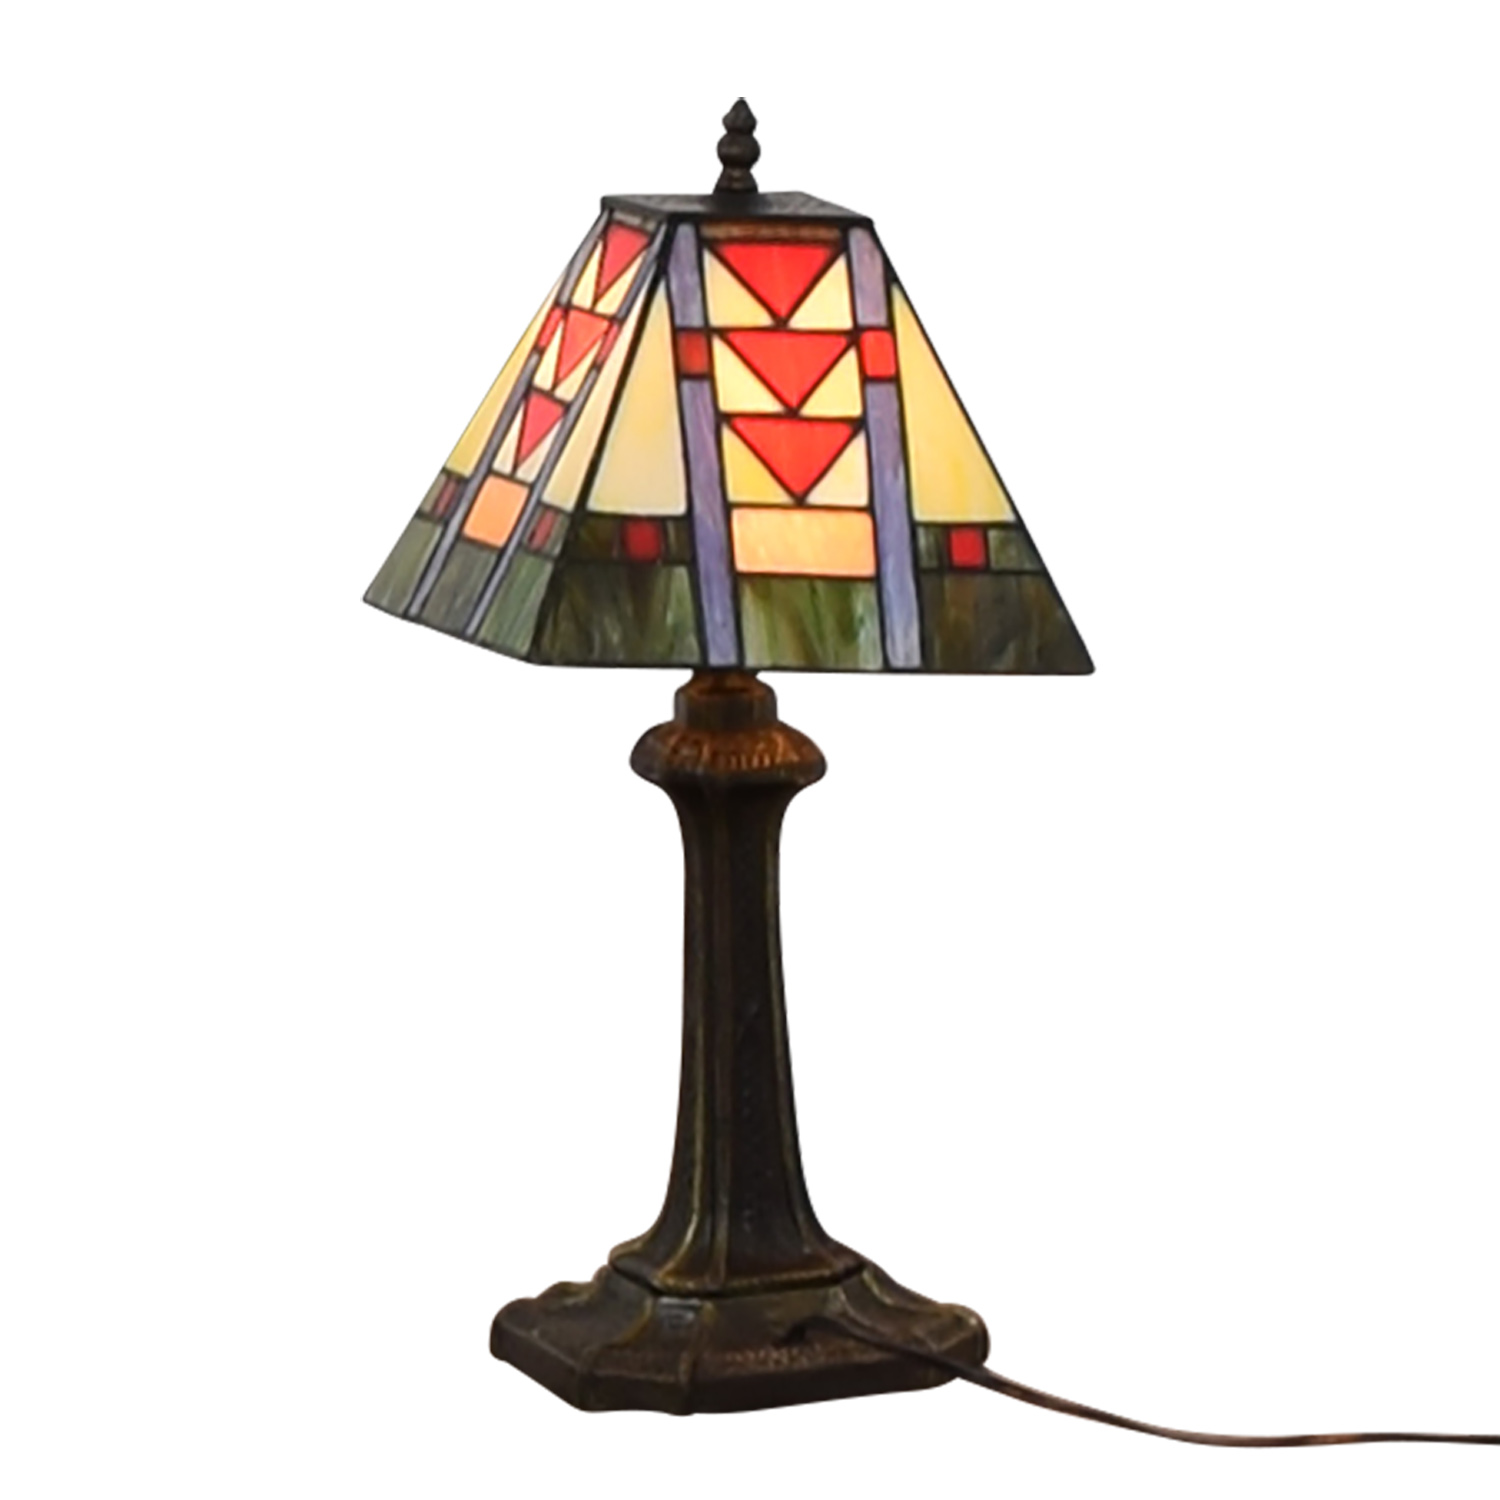 75 off tiffany style stained glass table lamp decor tiffany style stained glass table lamp price mozeypictures Images